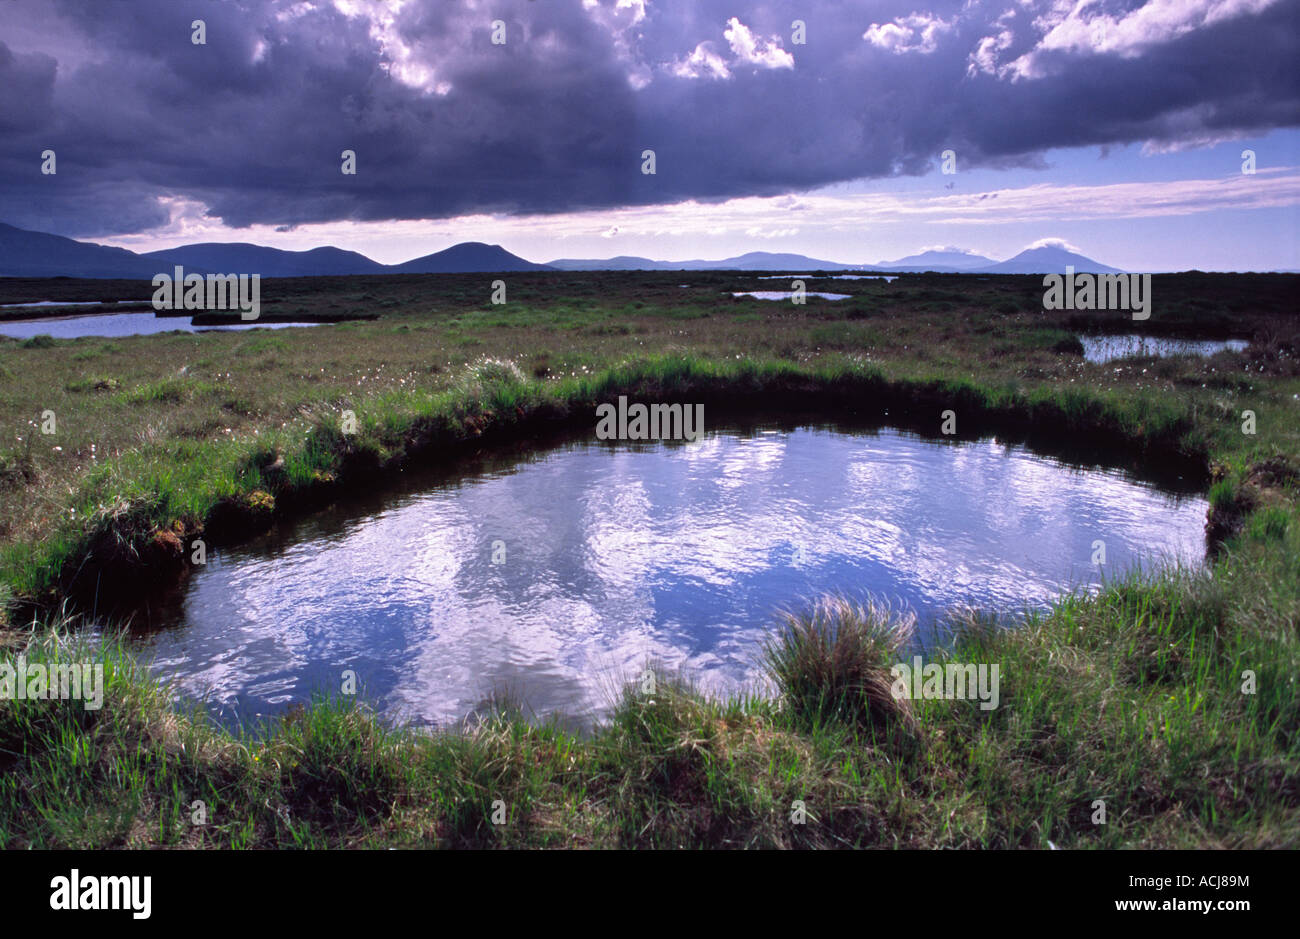 Sky reflected in a bog pool beneath the Nephin Beg Mountains, County Mayo, Ireland. - Stock Image